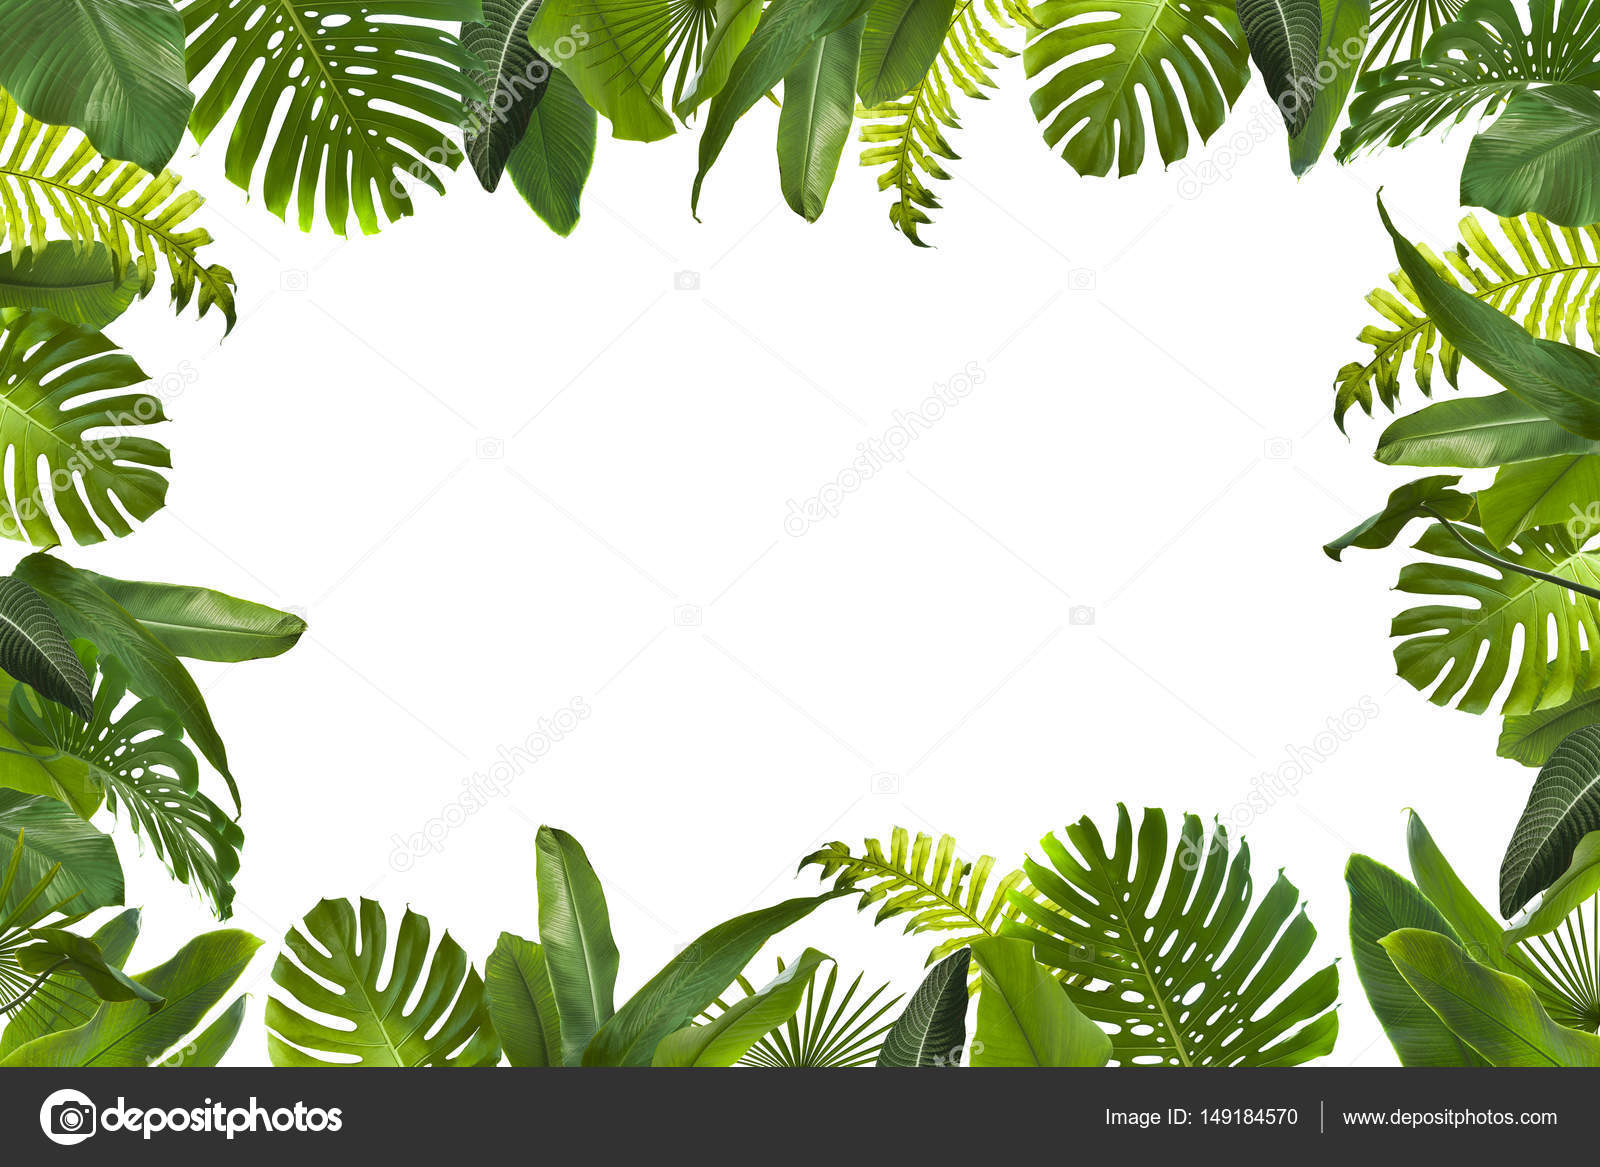 Tropical Leaves Background Stock Photo C Piolka 149184570 Huge collection, amazing choice, 100+ million high quality, affordable rf and rm images. https depositphotos com 149184570 stock photo tropical leaves background html